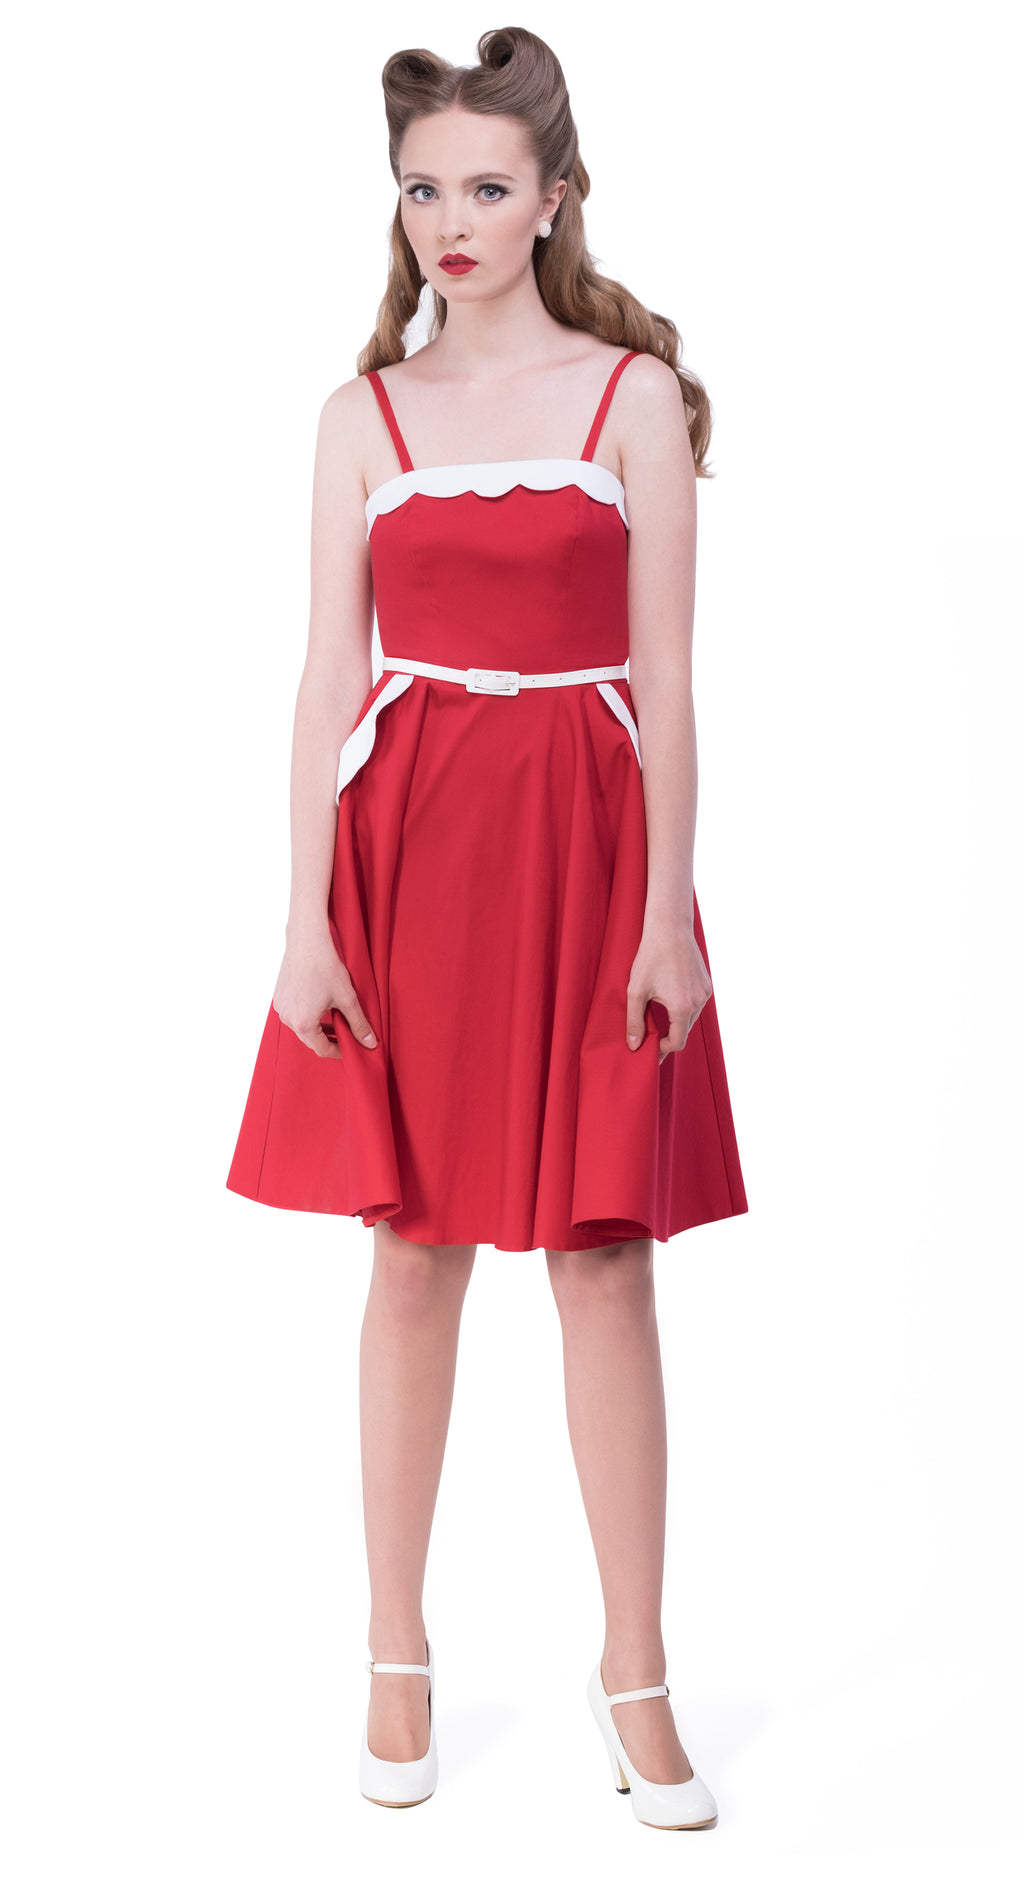 This red rockabilly 50s style Italian cotton dress from the first season of Magdalena's Main Squeeze label provides a fitted bodice with full length circle skirt, incorporates impacting detail by way of a darling white scallop top and scallop pockets, detachable ballerina shoulder straps and a white faux leather belt.